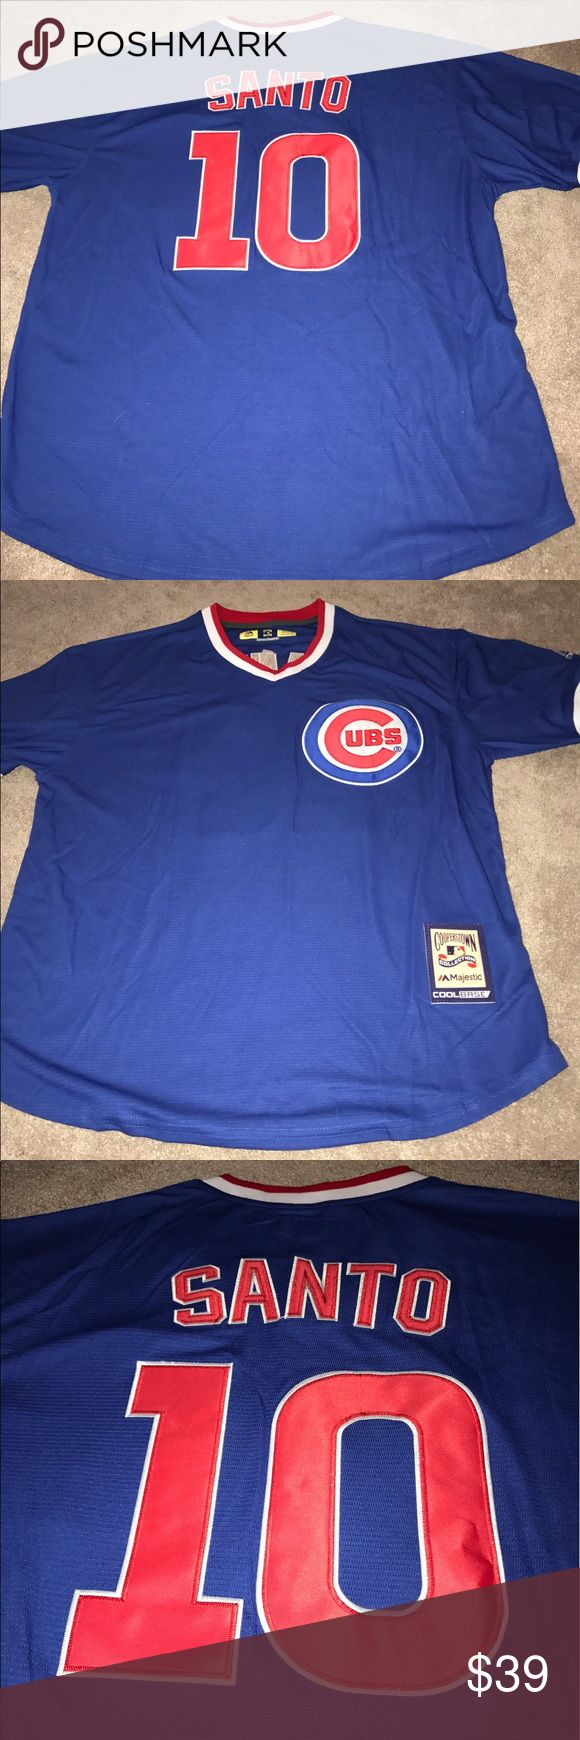 Chicago Cubs Ron Santo 1984 Throwback Jersey XL Chicago Cubs 1984 Ron Santo throwback jersey. Made by Majestic Athletic, brand new with tags, fully embroidered, size XL. Check my other listings for more Cubs merchandise! Men, Women, Kids and Throwbacks! Majestic Shirts Tees - Short Sleeve